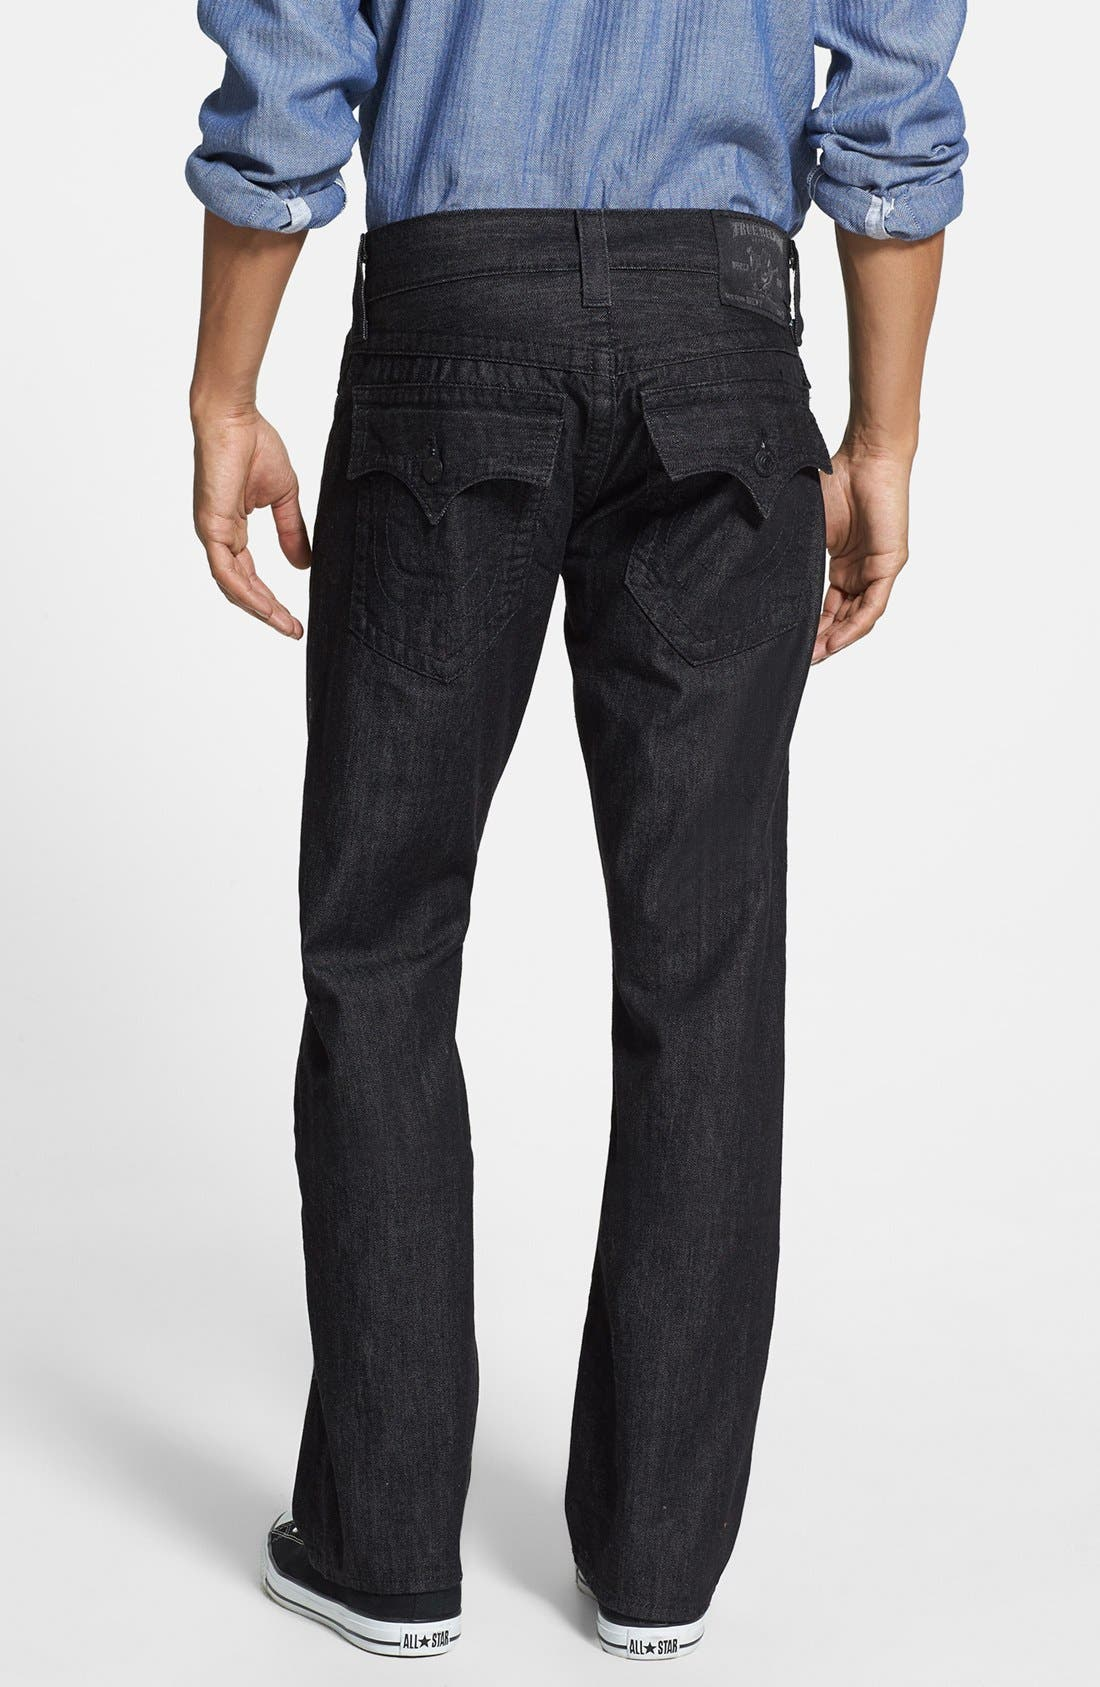 'Ricky' Relaxed Fit Jeans,                         Main,                         color, 001